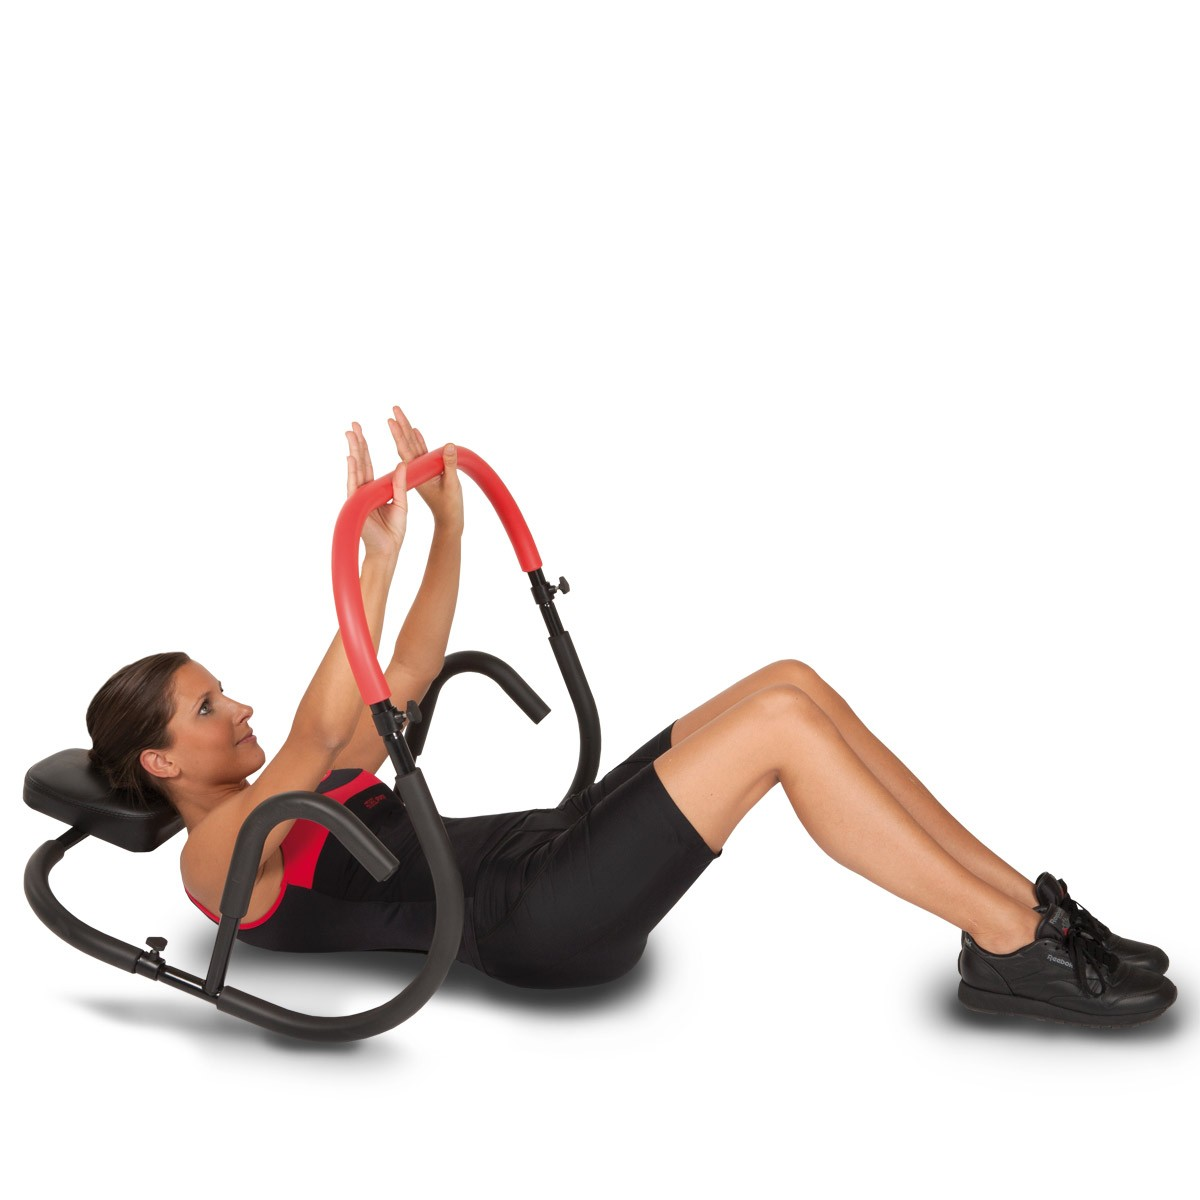 gym equipment to use for abs